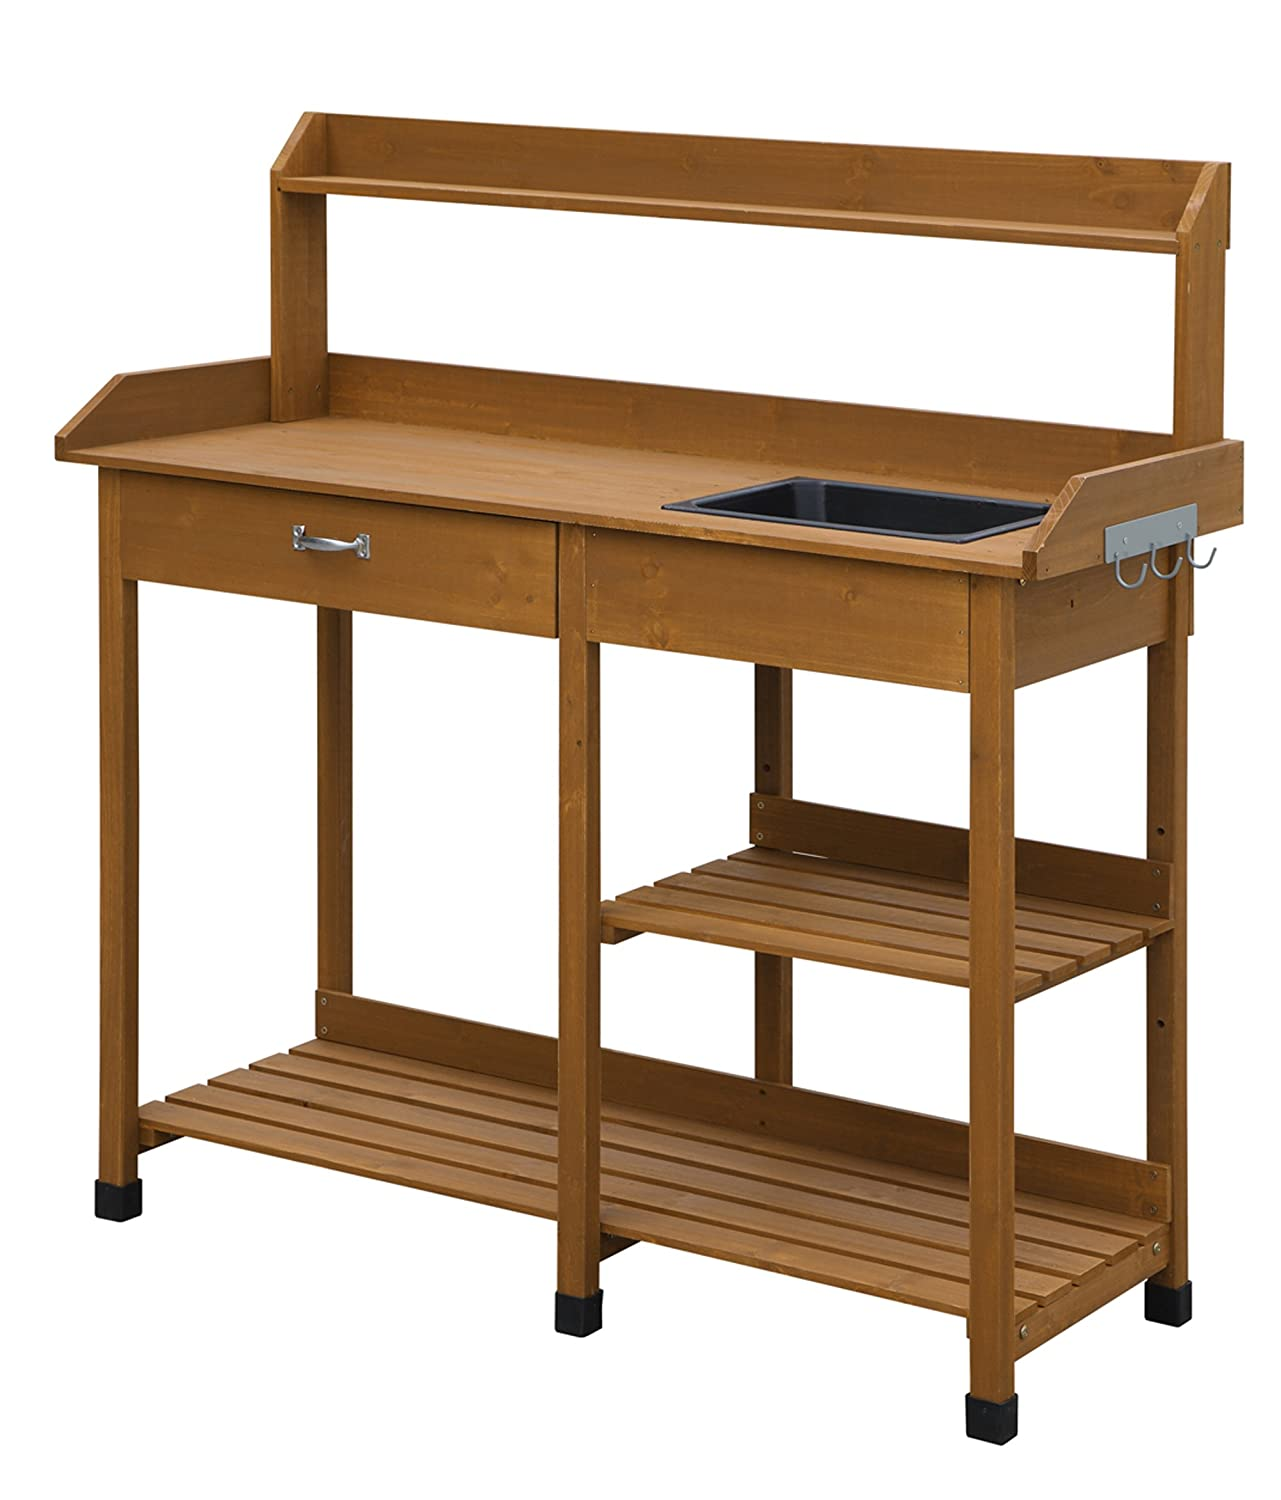 High Quality Convenience Concepts Deluxe Potting Bench, Light Oak